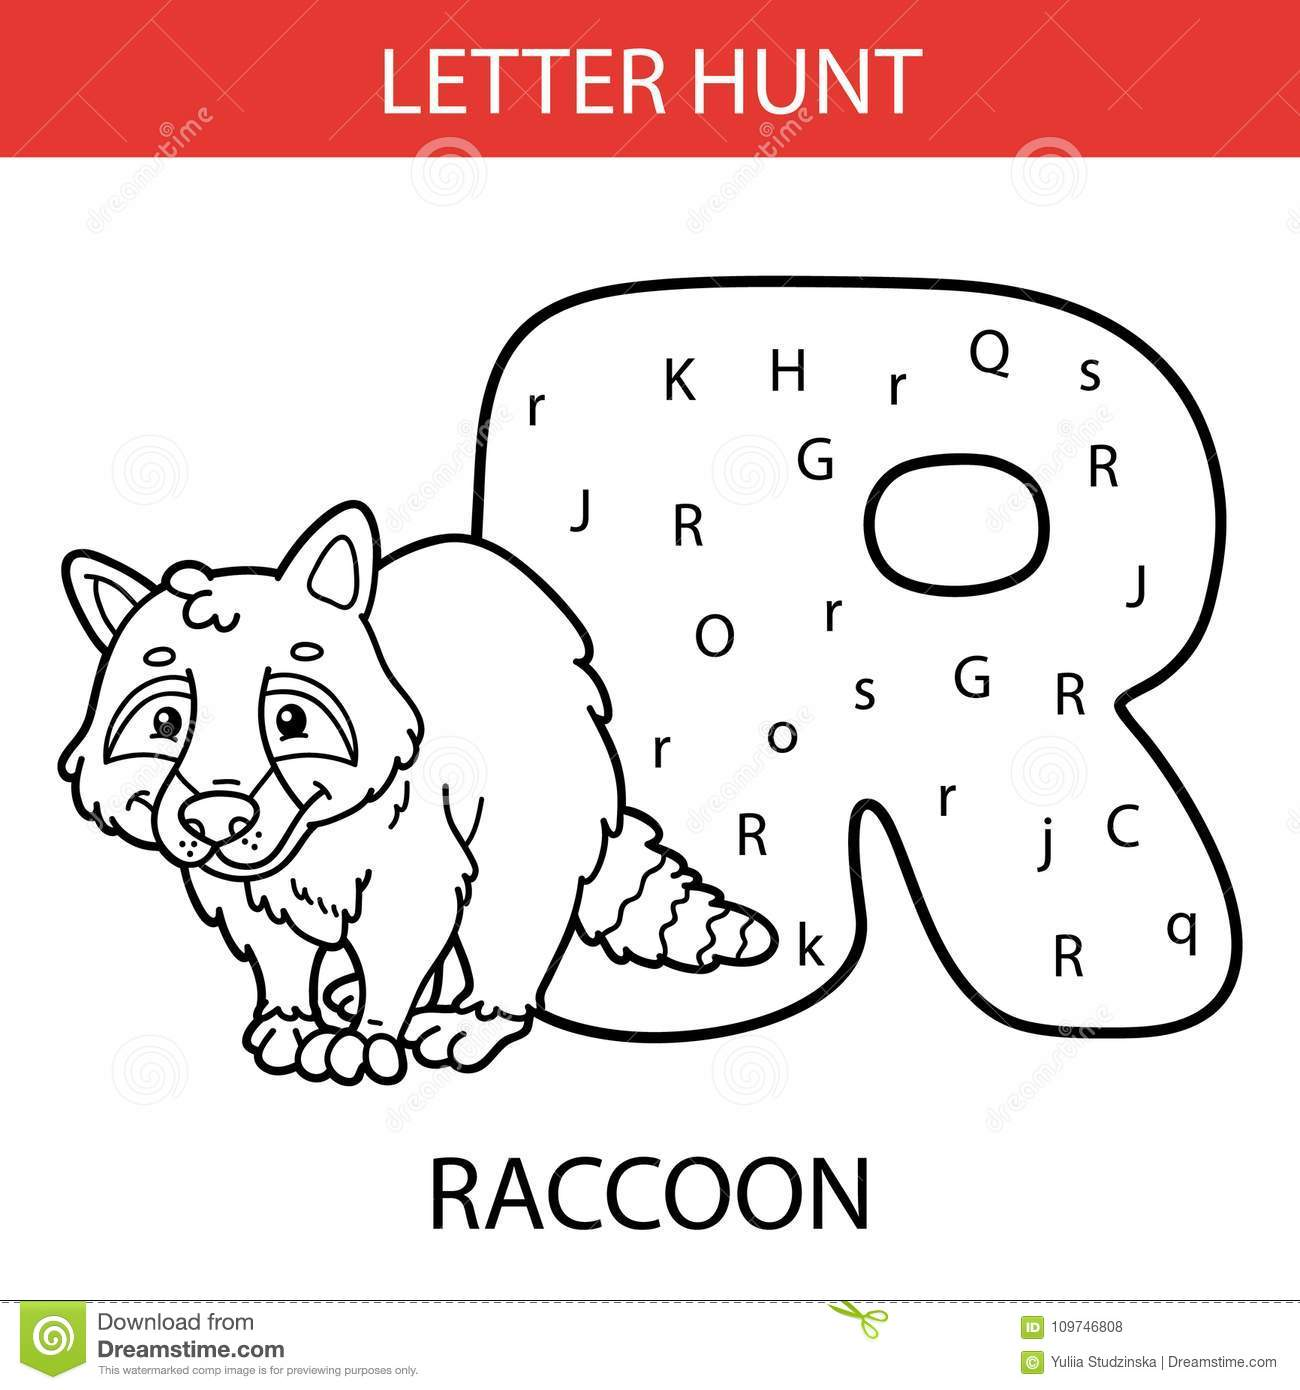 Animal Letter Hunt Raccoon Stock Vector Illustration Of Child